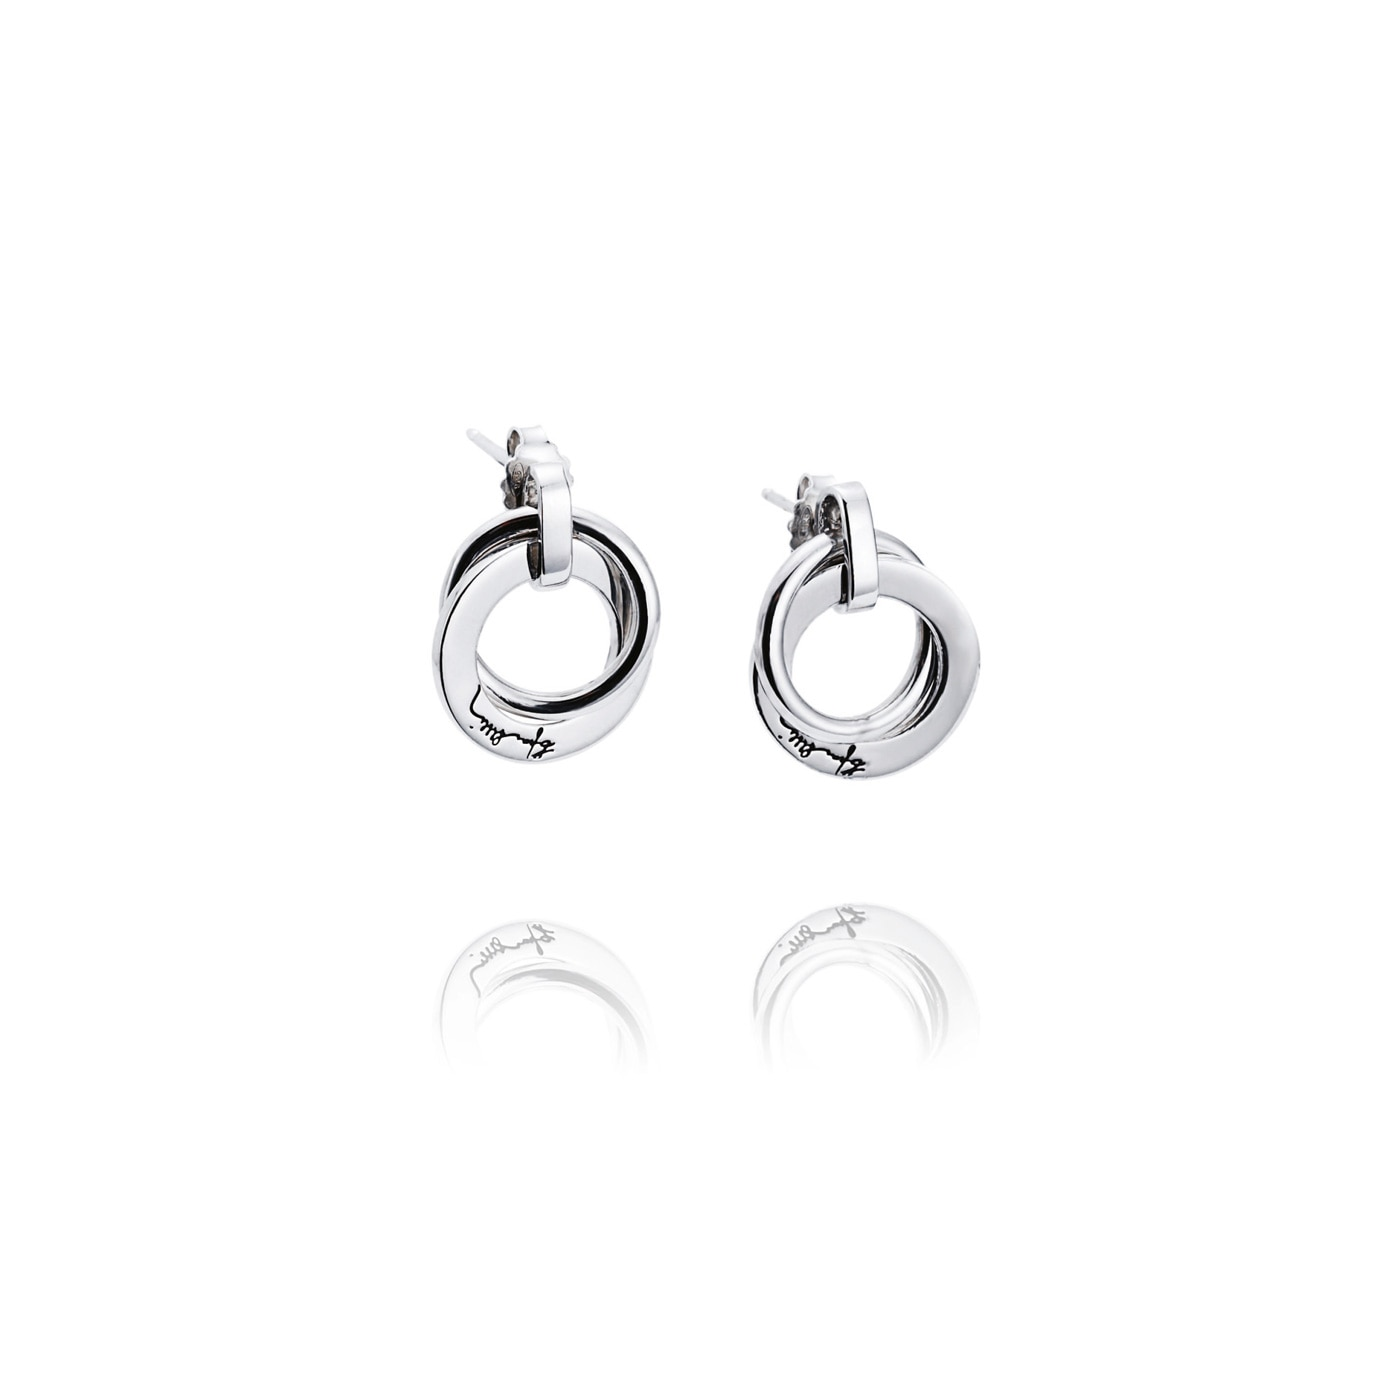 Twosome-Earrings-12-100-00526__